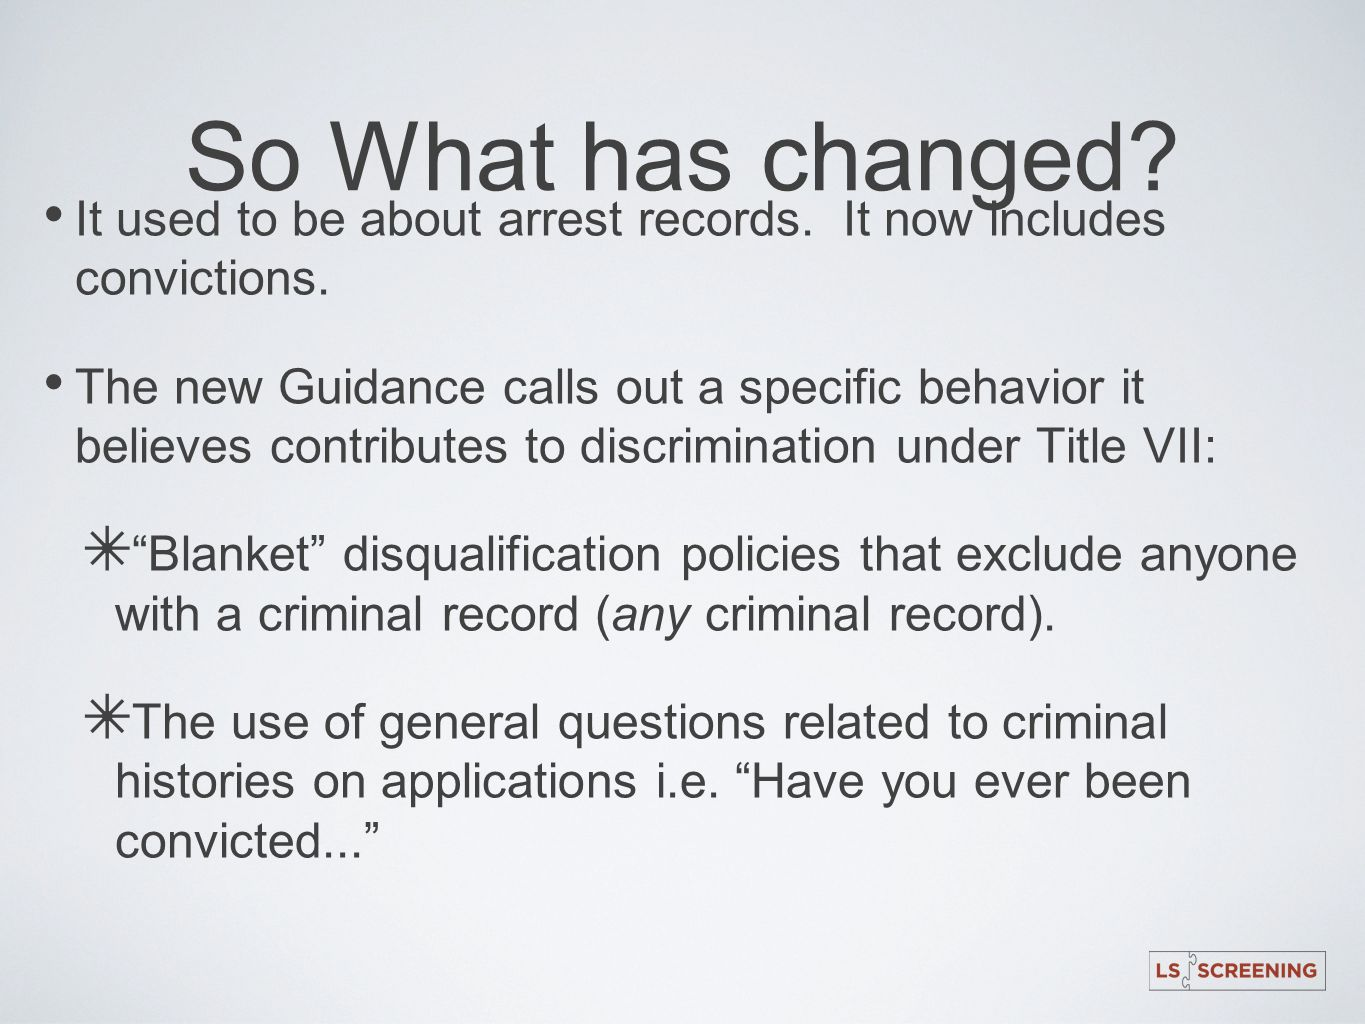 So What has changed? It used to be about arrest records. It now includes convictions. The new Guidance calls out a specific behavior it believes contr